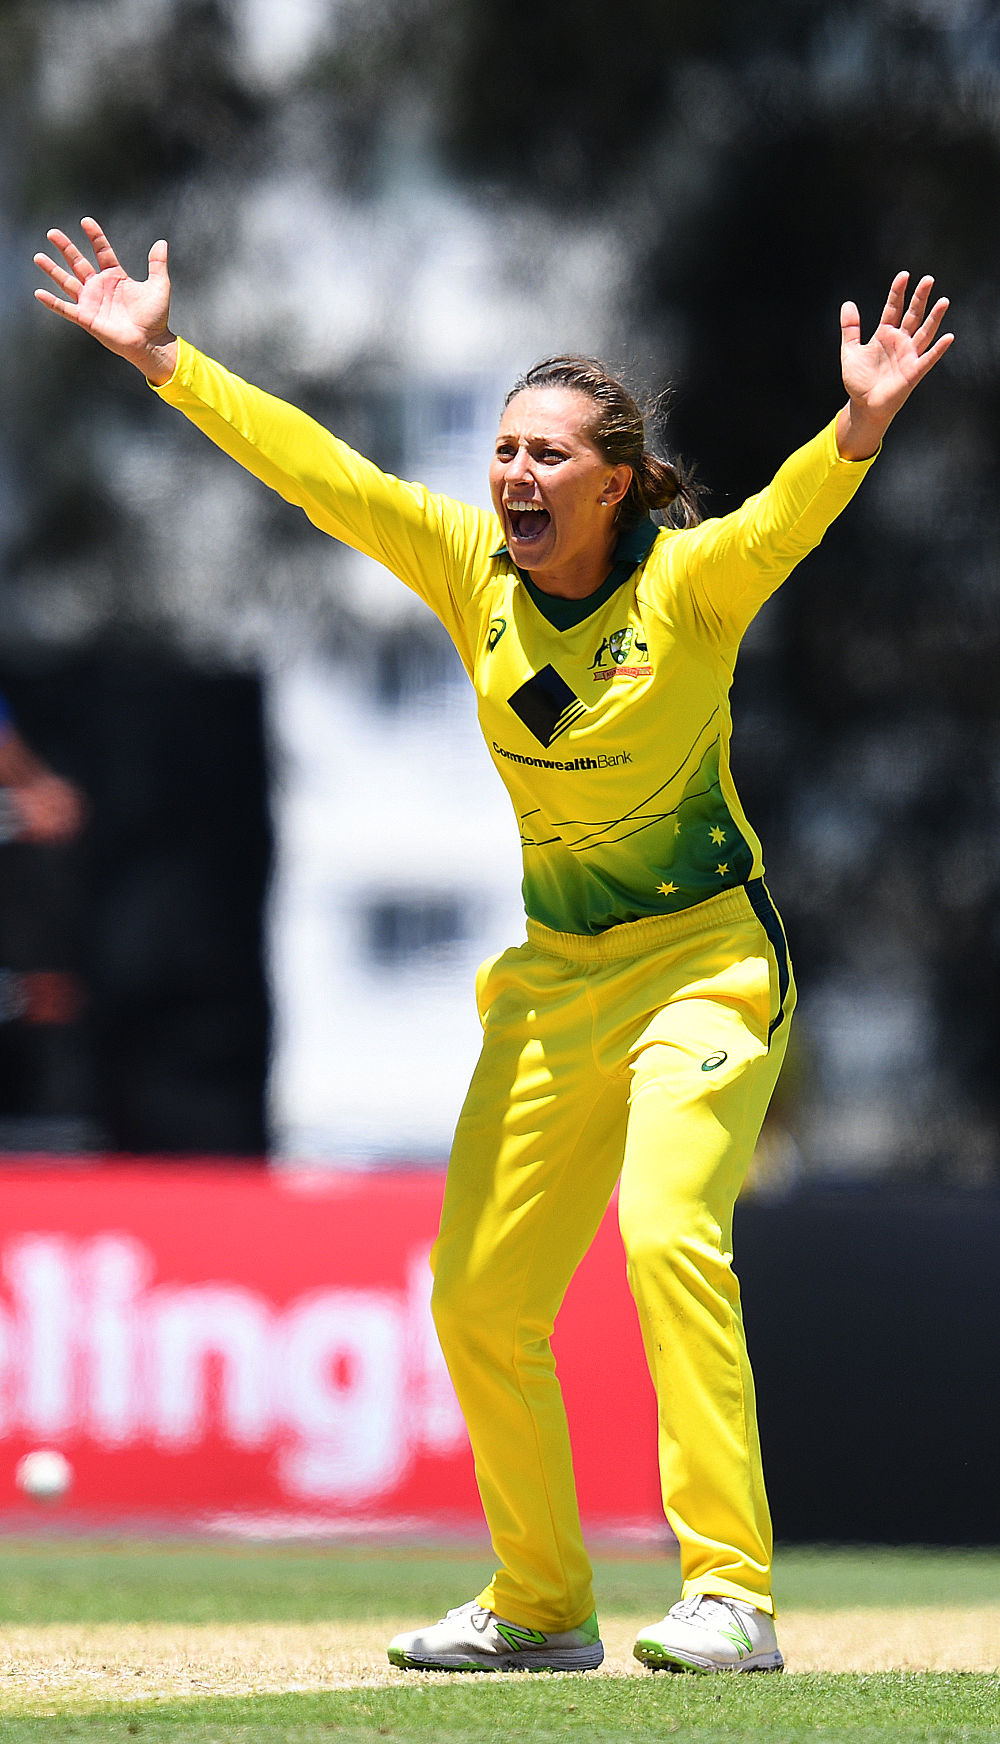 Ashleigh Gardner Australia women's cricket tall